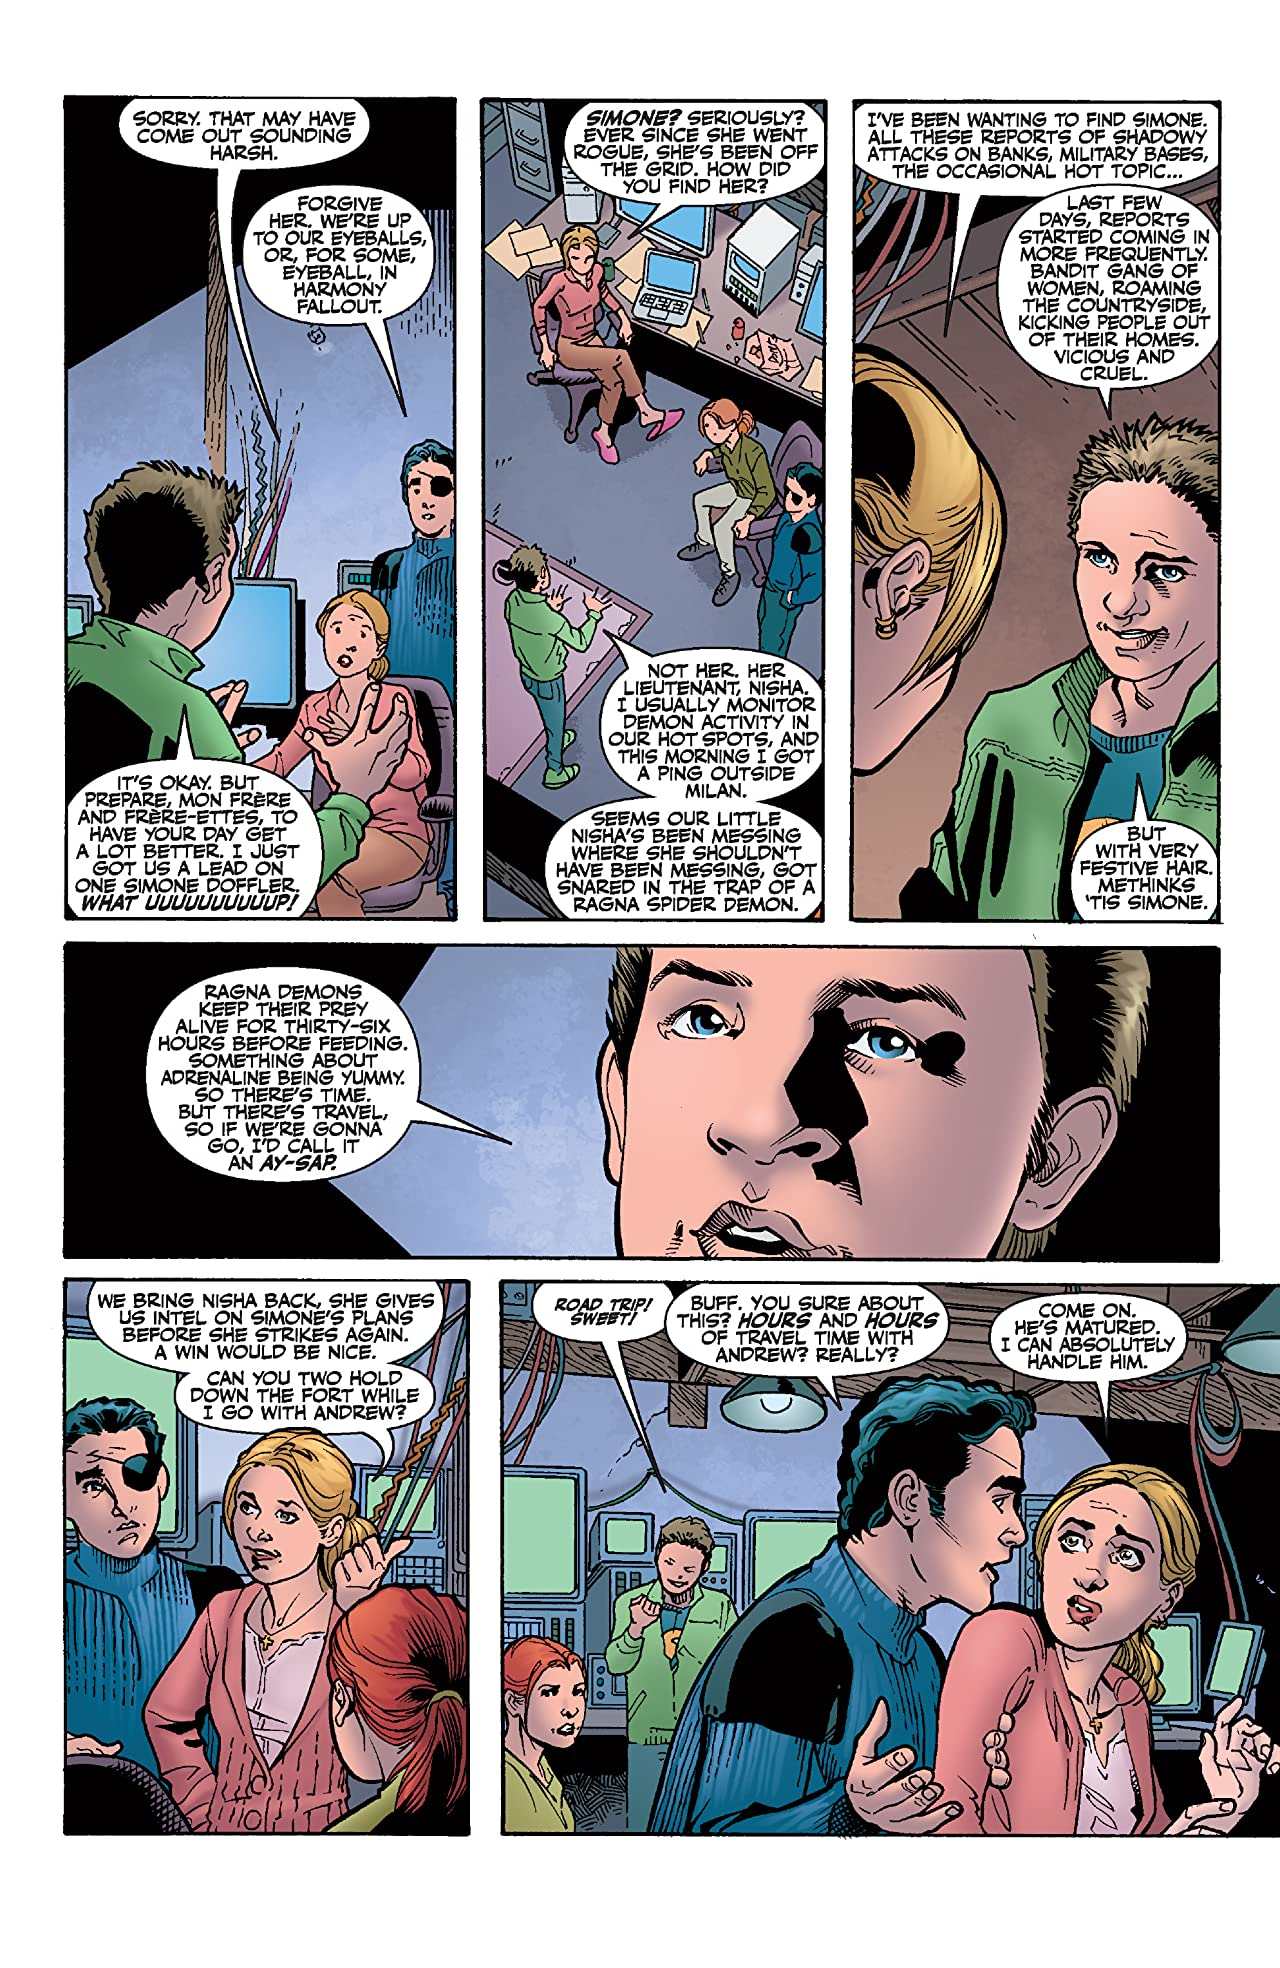 Buffy the Vampire Slayer: Season 8 #23